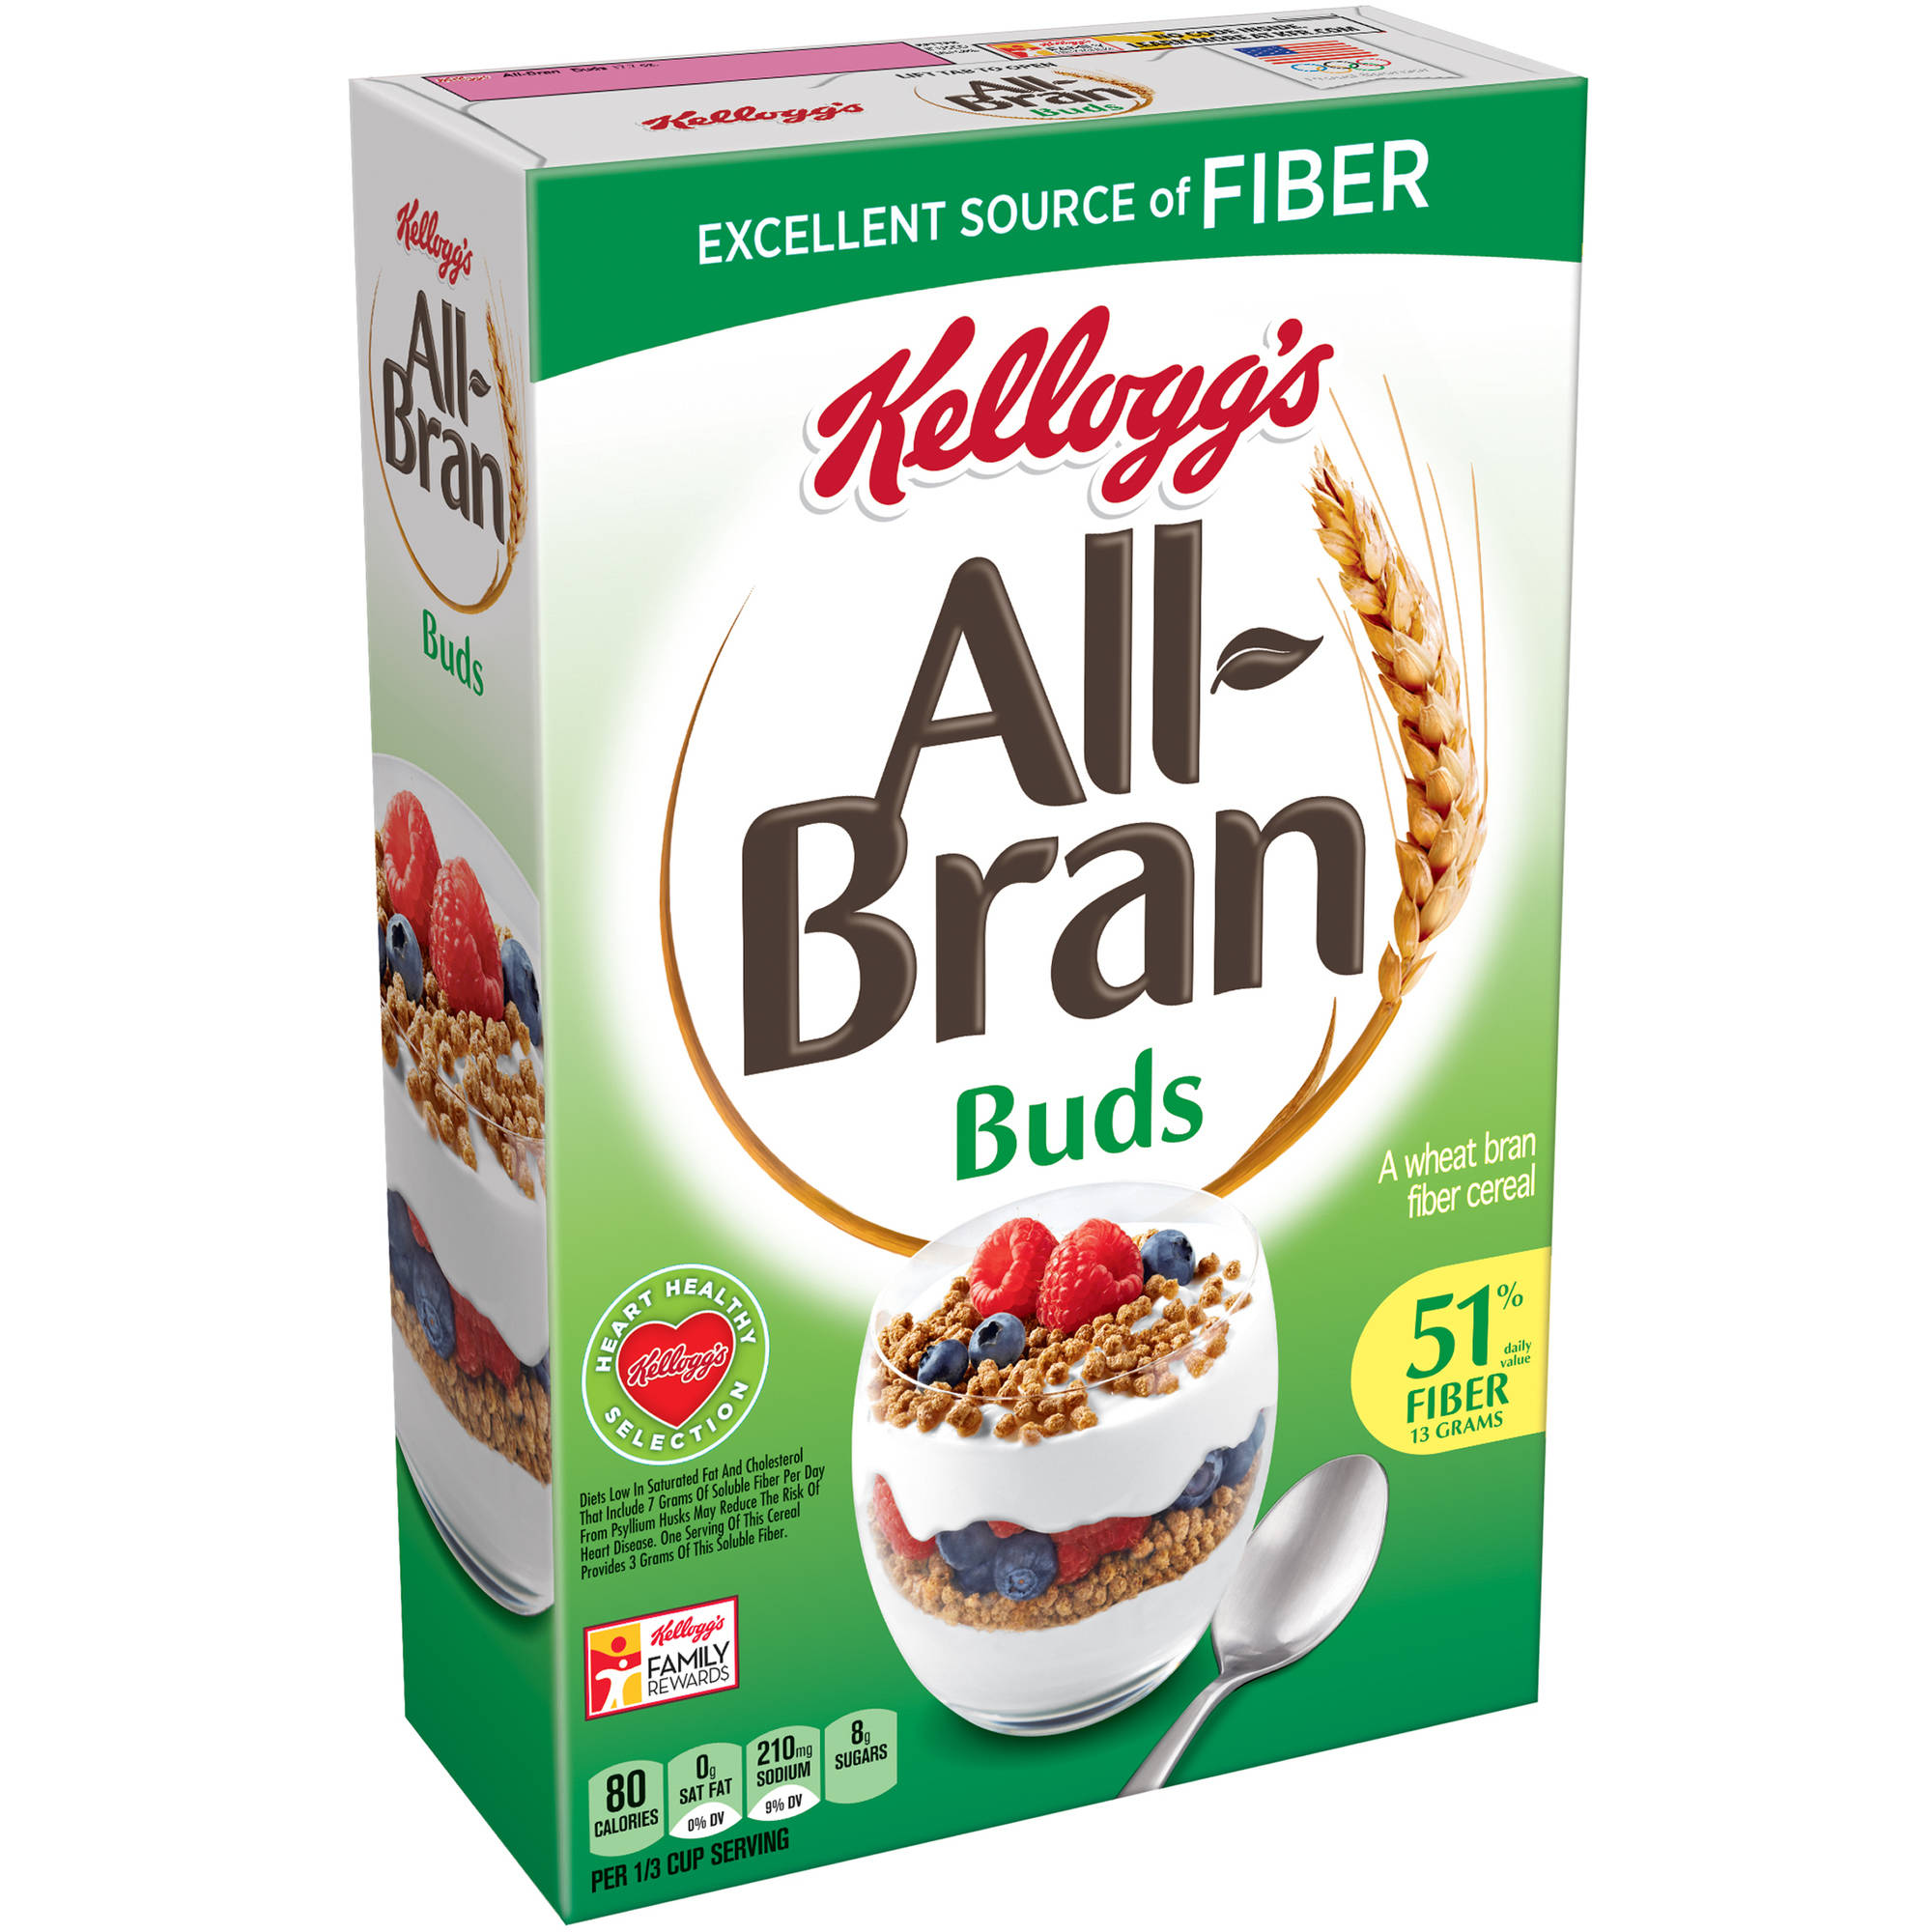 Kellogg's All-Bran Branbuds Cereal, 17.7 Oz